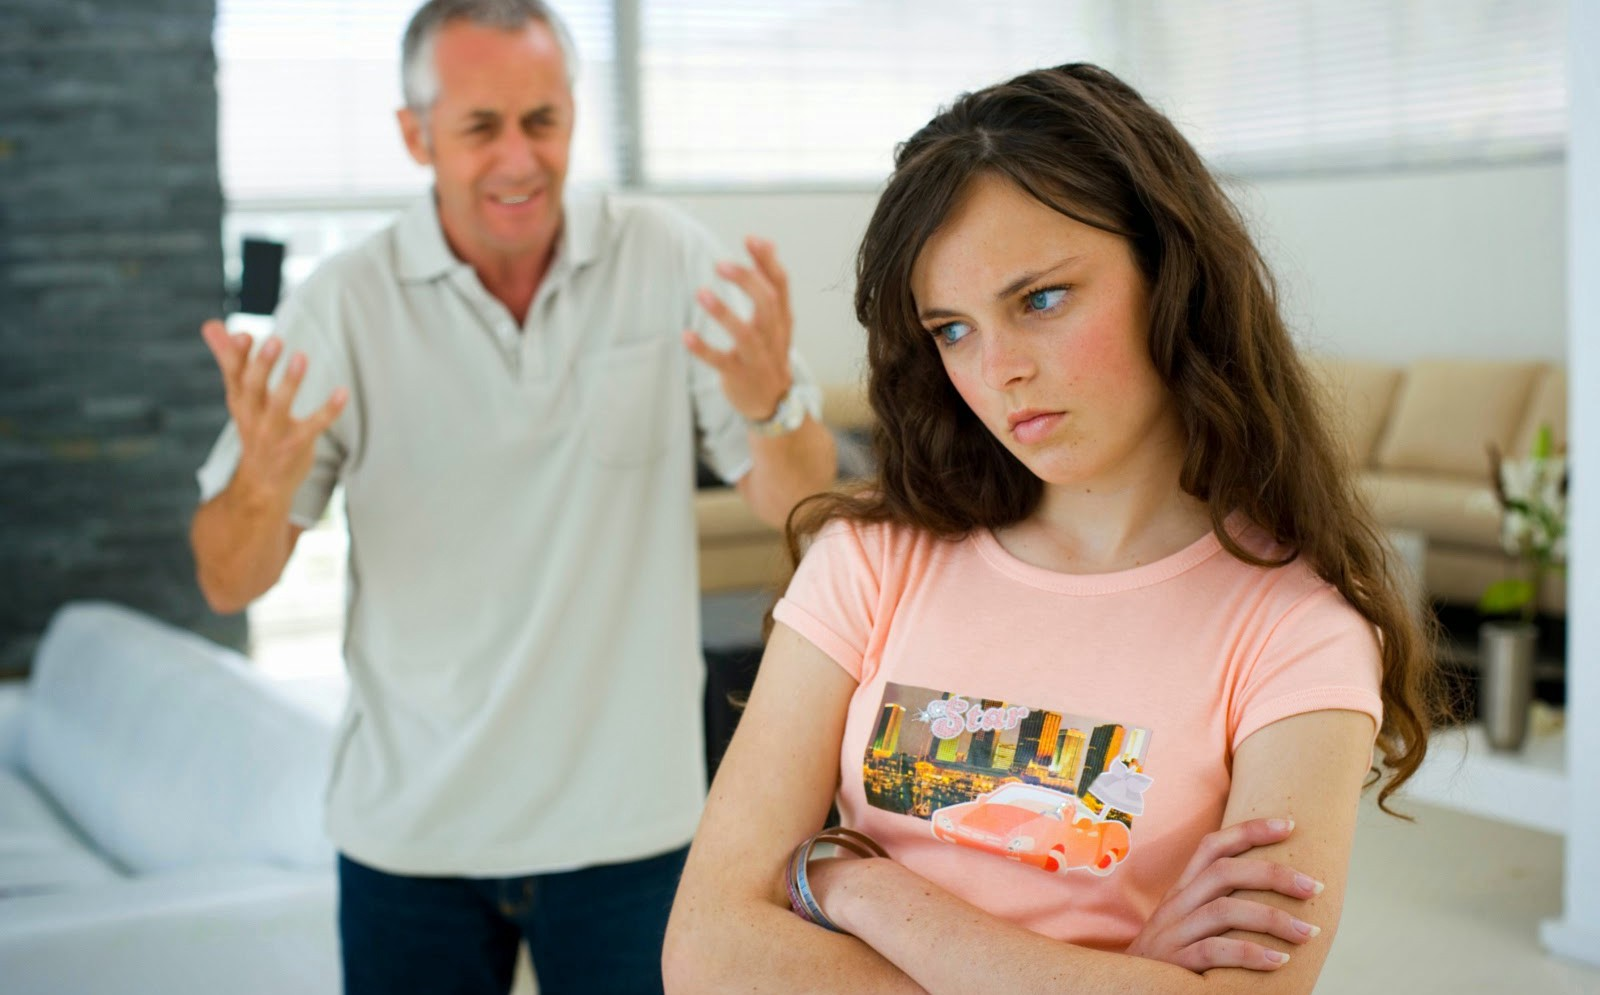 Parents Warn Troubled Teen Her Behavior Will Only Lead to